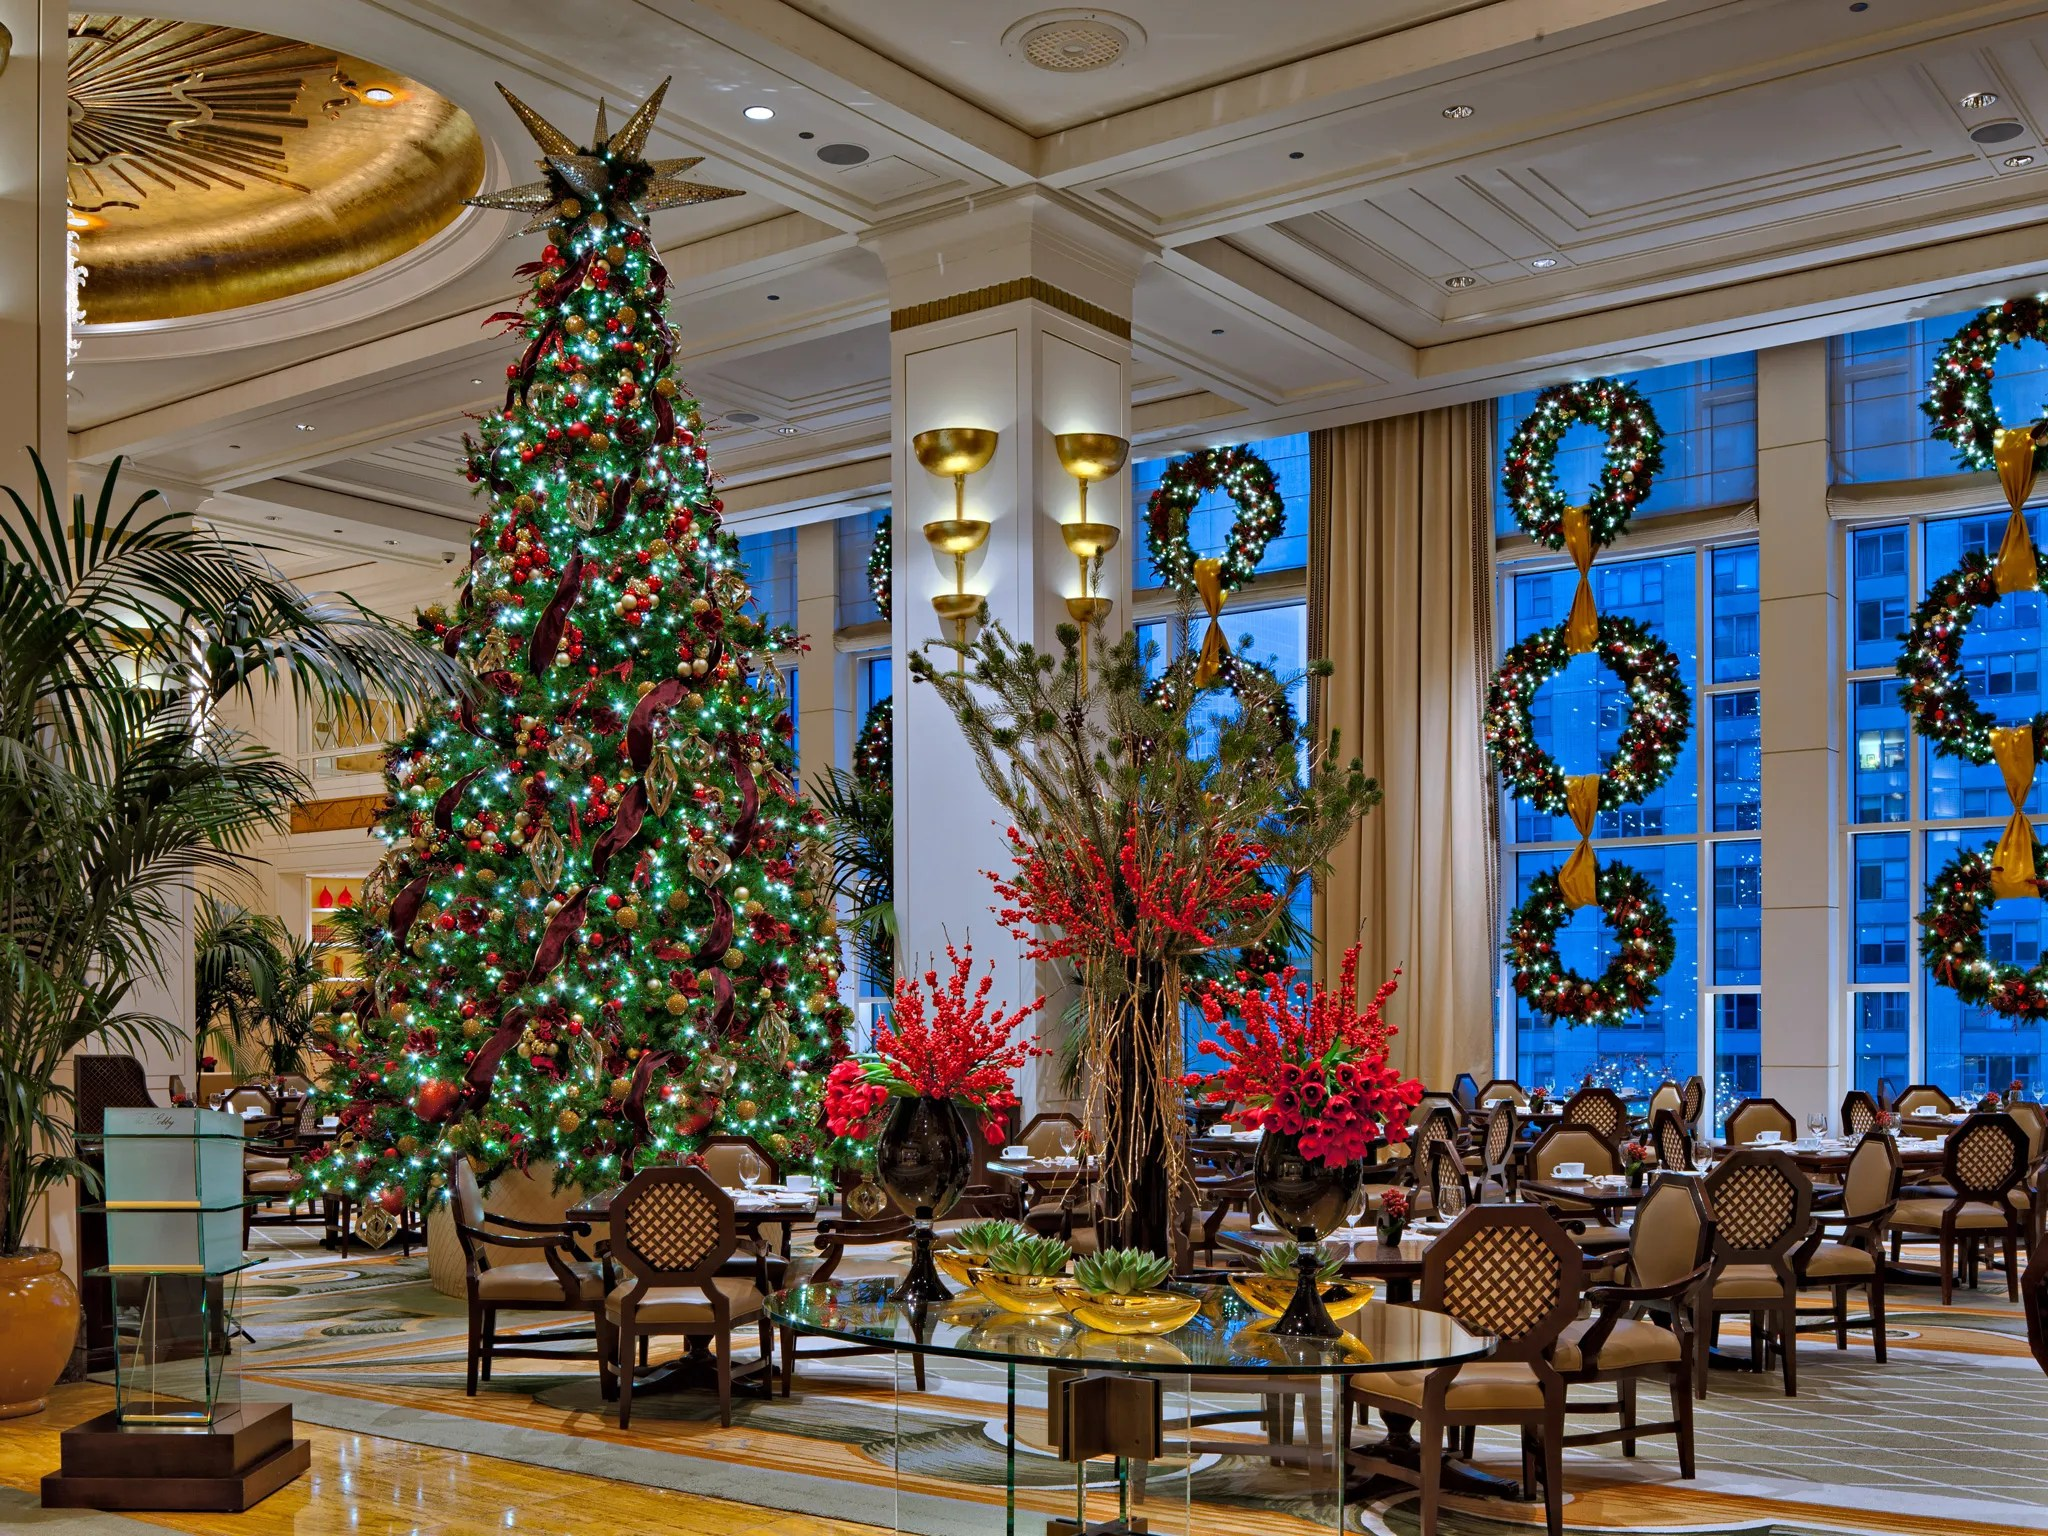 Decoration Hotel The 12 Best Hotel Christmas Trees Condé Nast Traveler